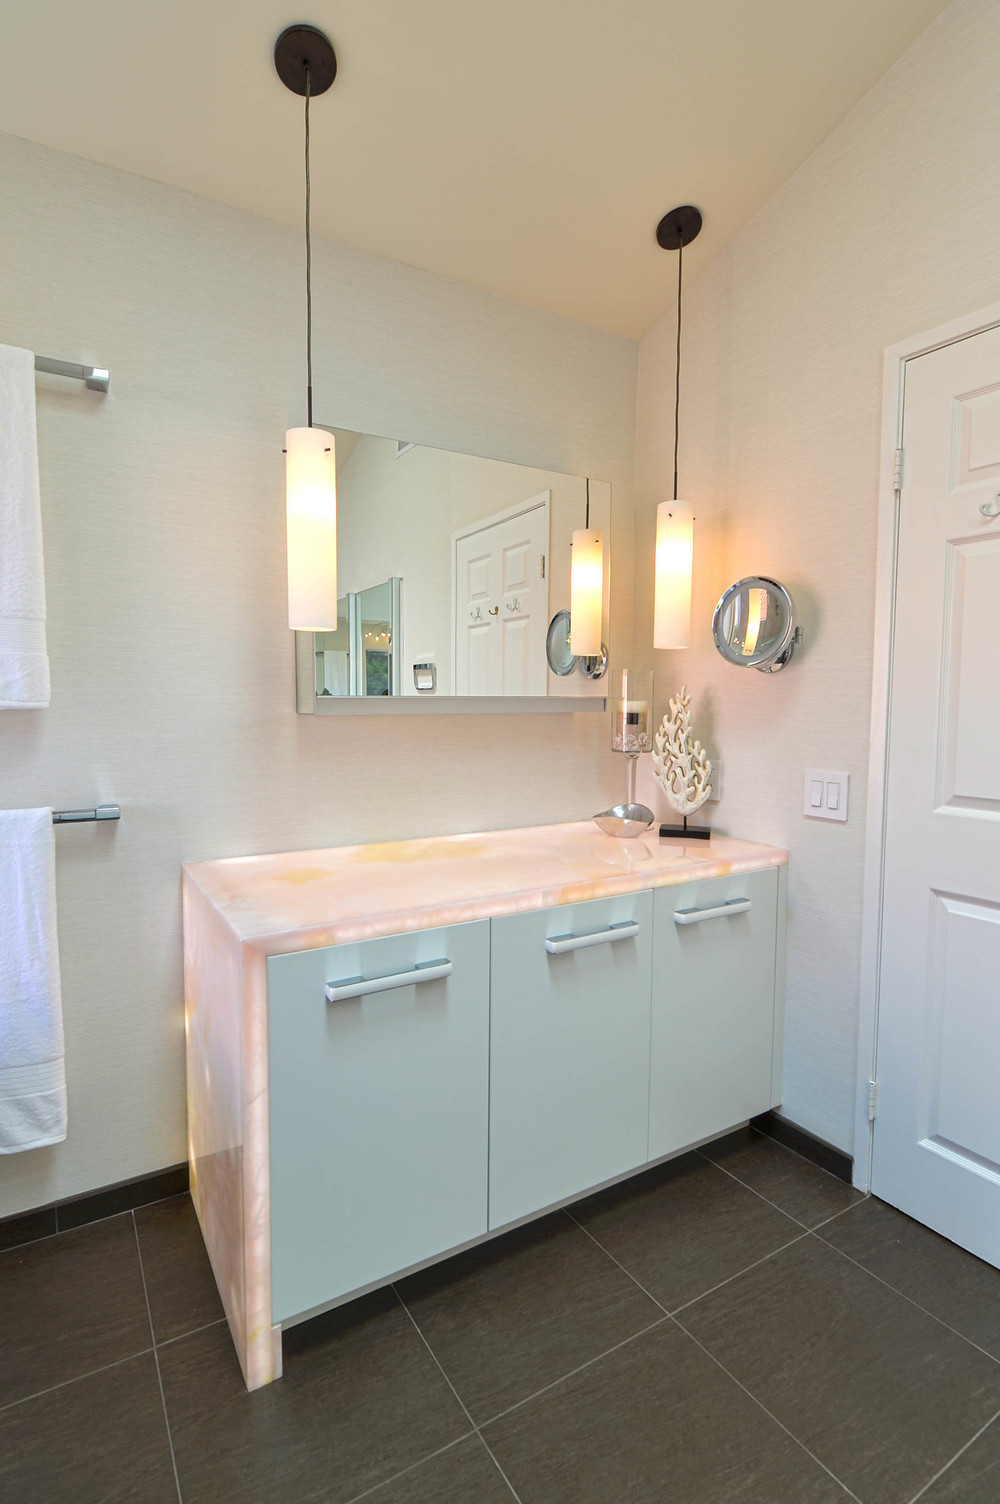 Marvelous Bathroom Design San Diego. San Diego Modern Bath Remodel Bathroom Design